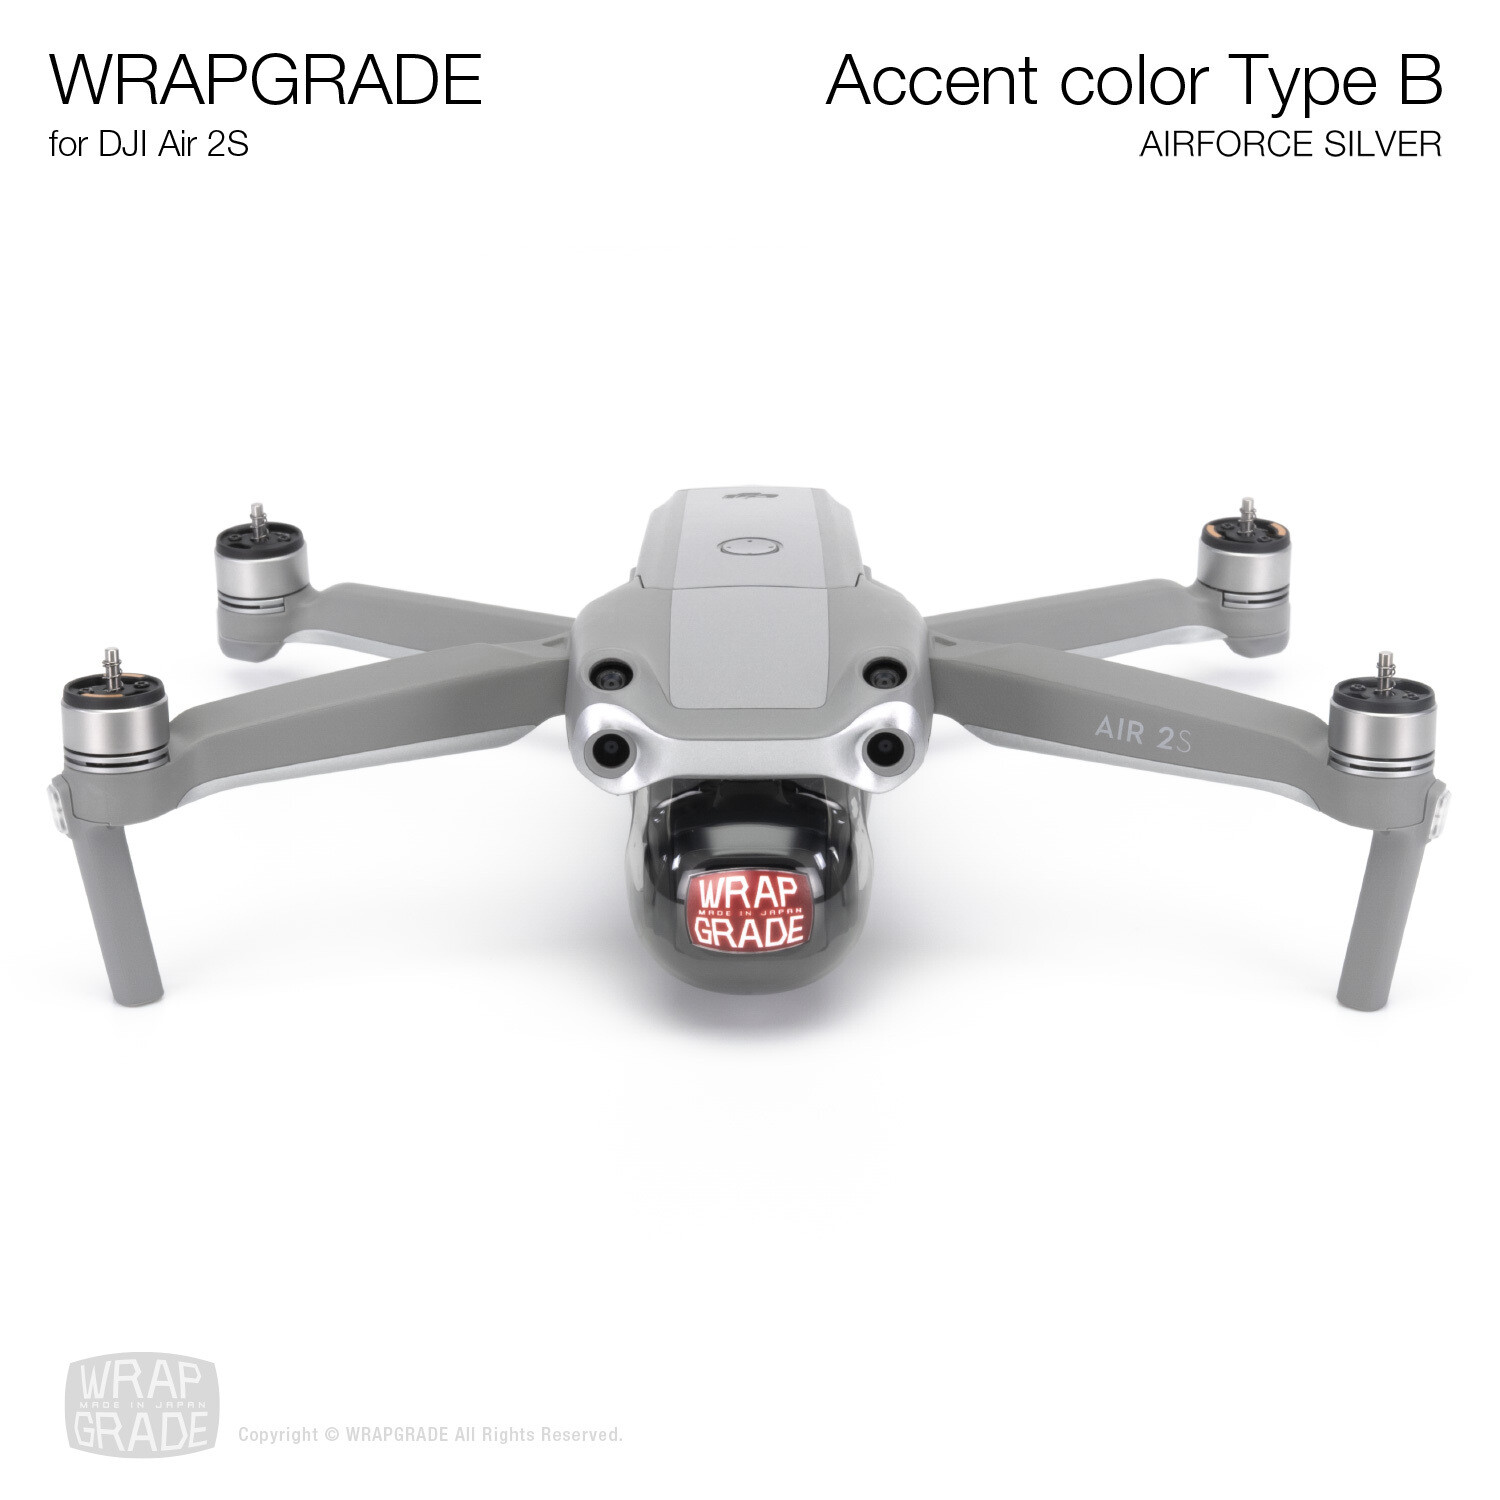 Wrapgrade Skin for DJI Air 2S | Accent Color B (AIRFORCE SILVER)